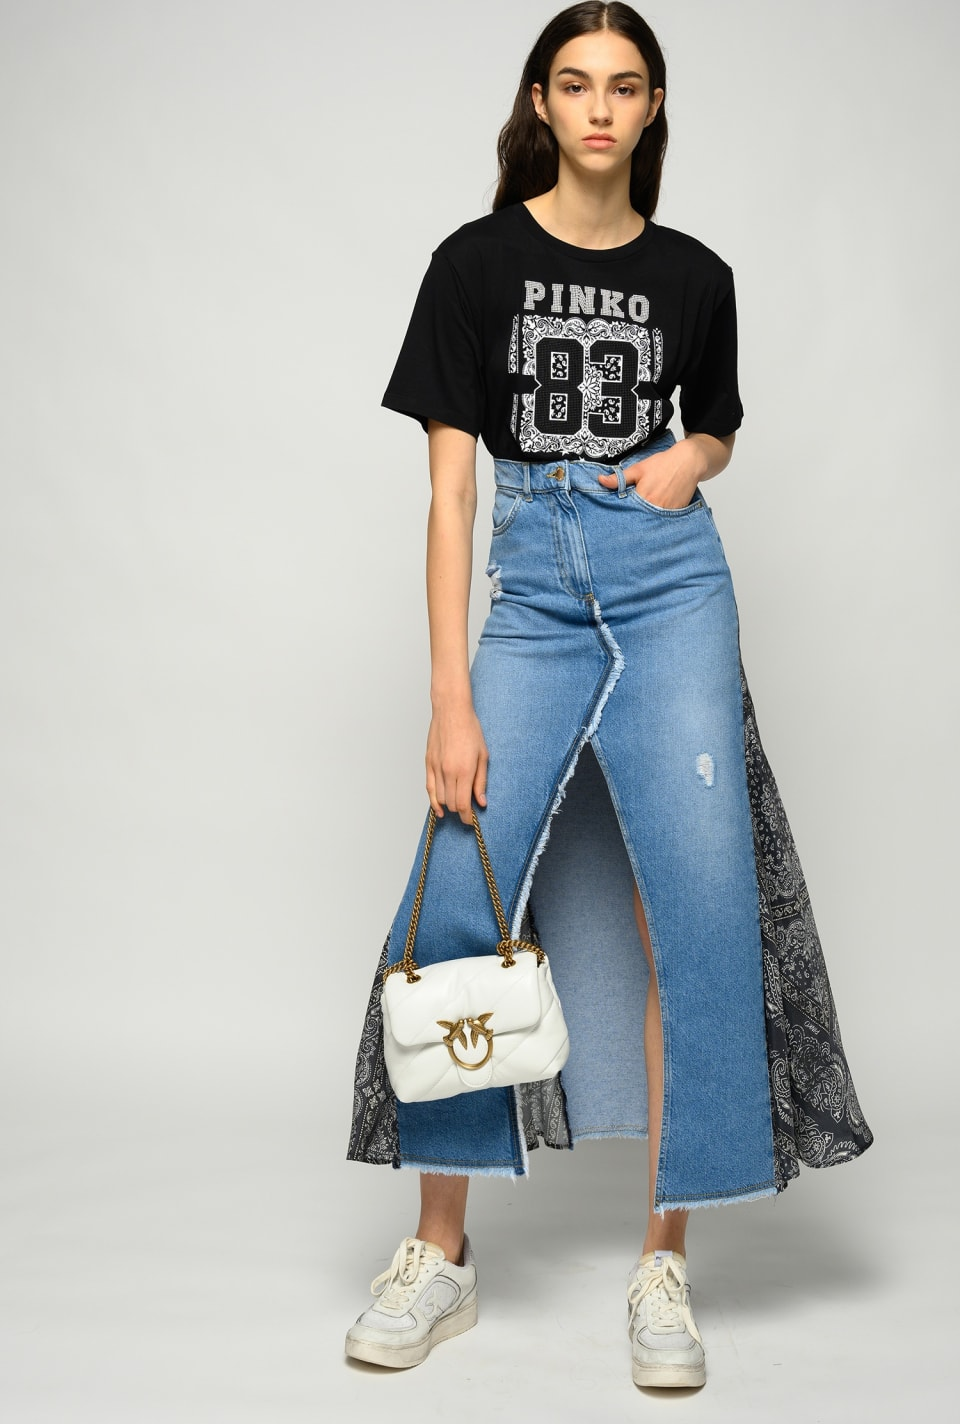 Long denim skirt featuring bandana-print inserts - Pinko